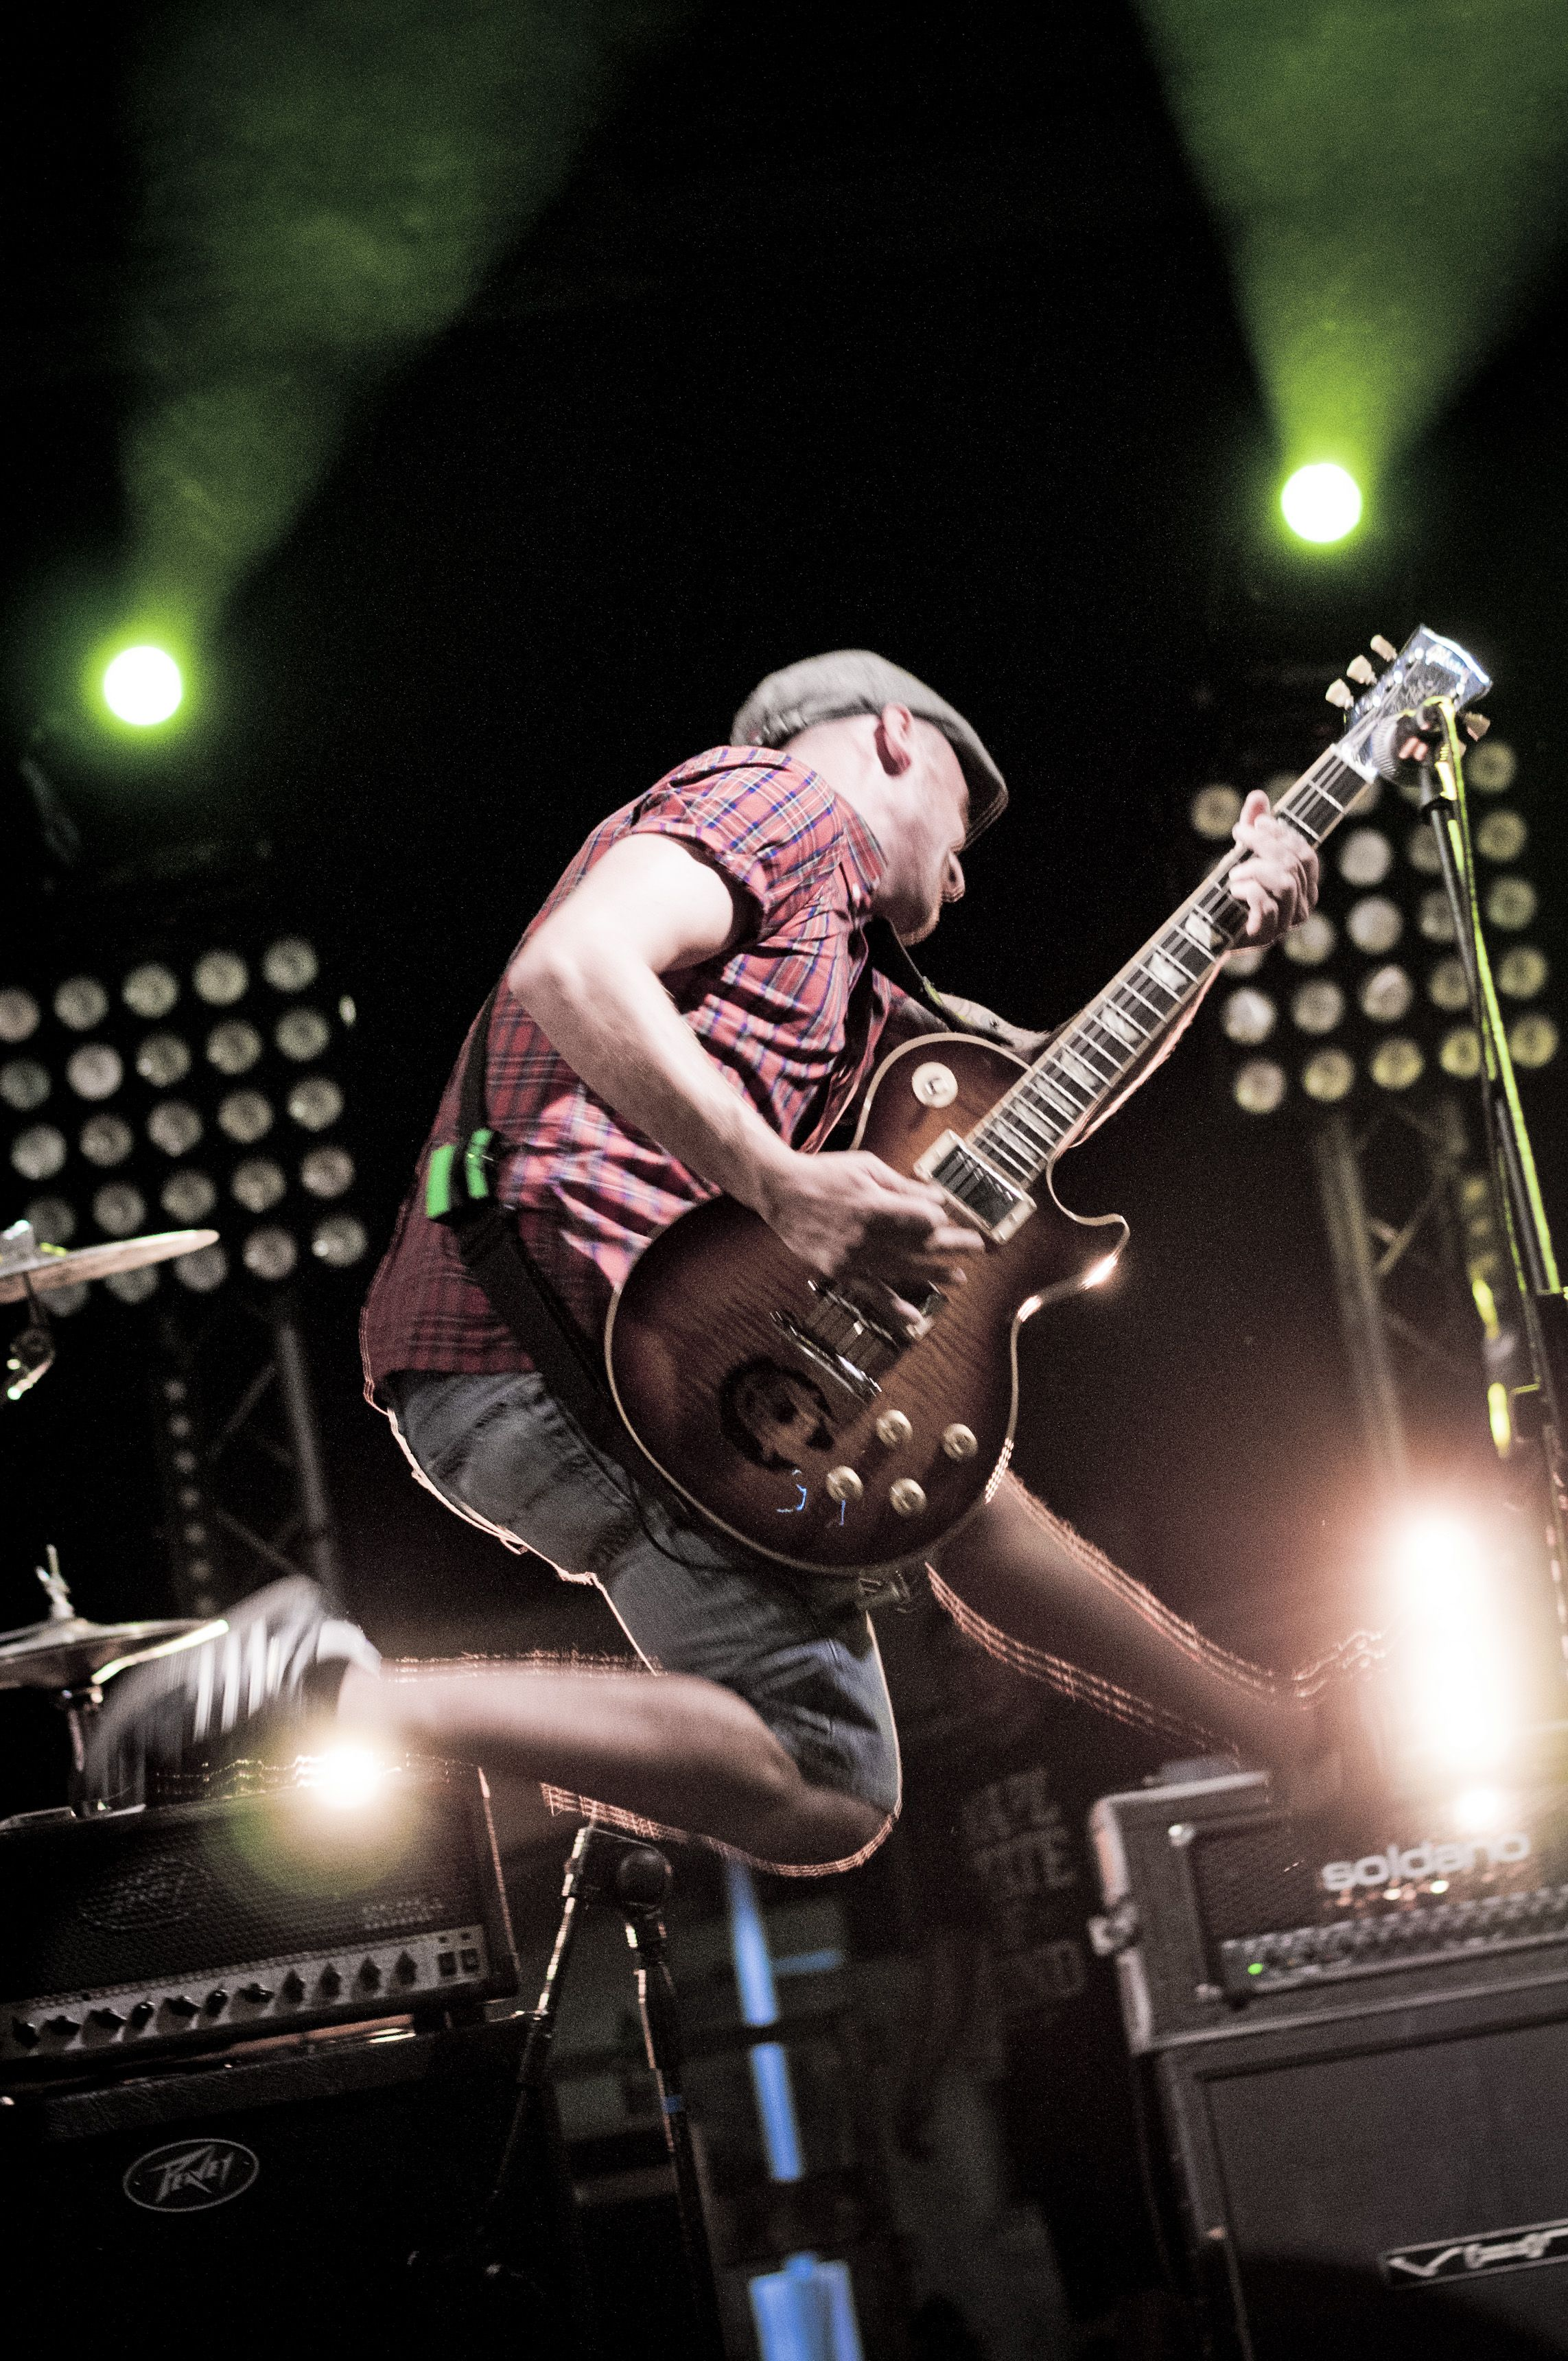 RFC, music coast to coast, concer, pummarock, ska, jump, photo, Photographer Diego Dentale